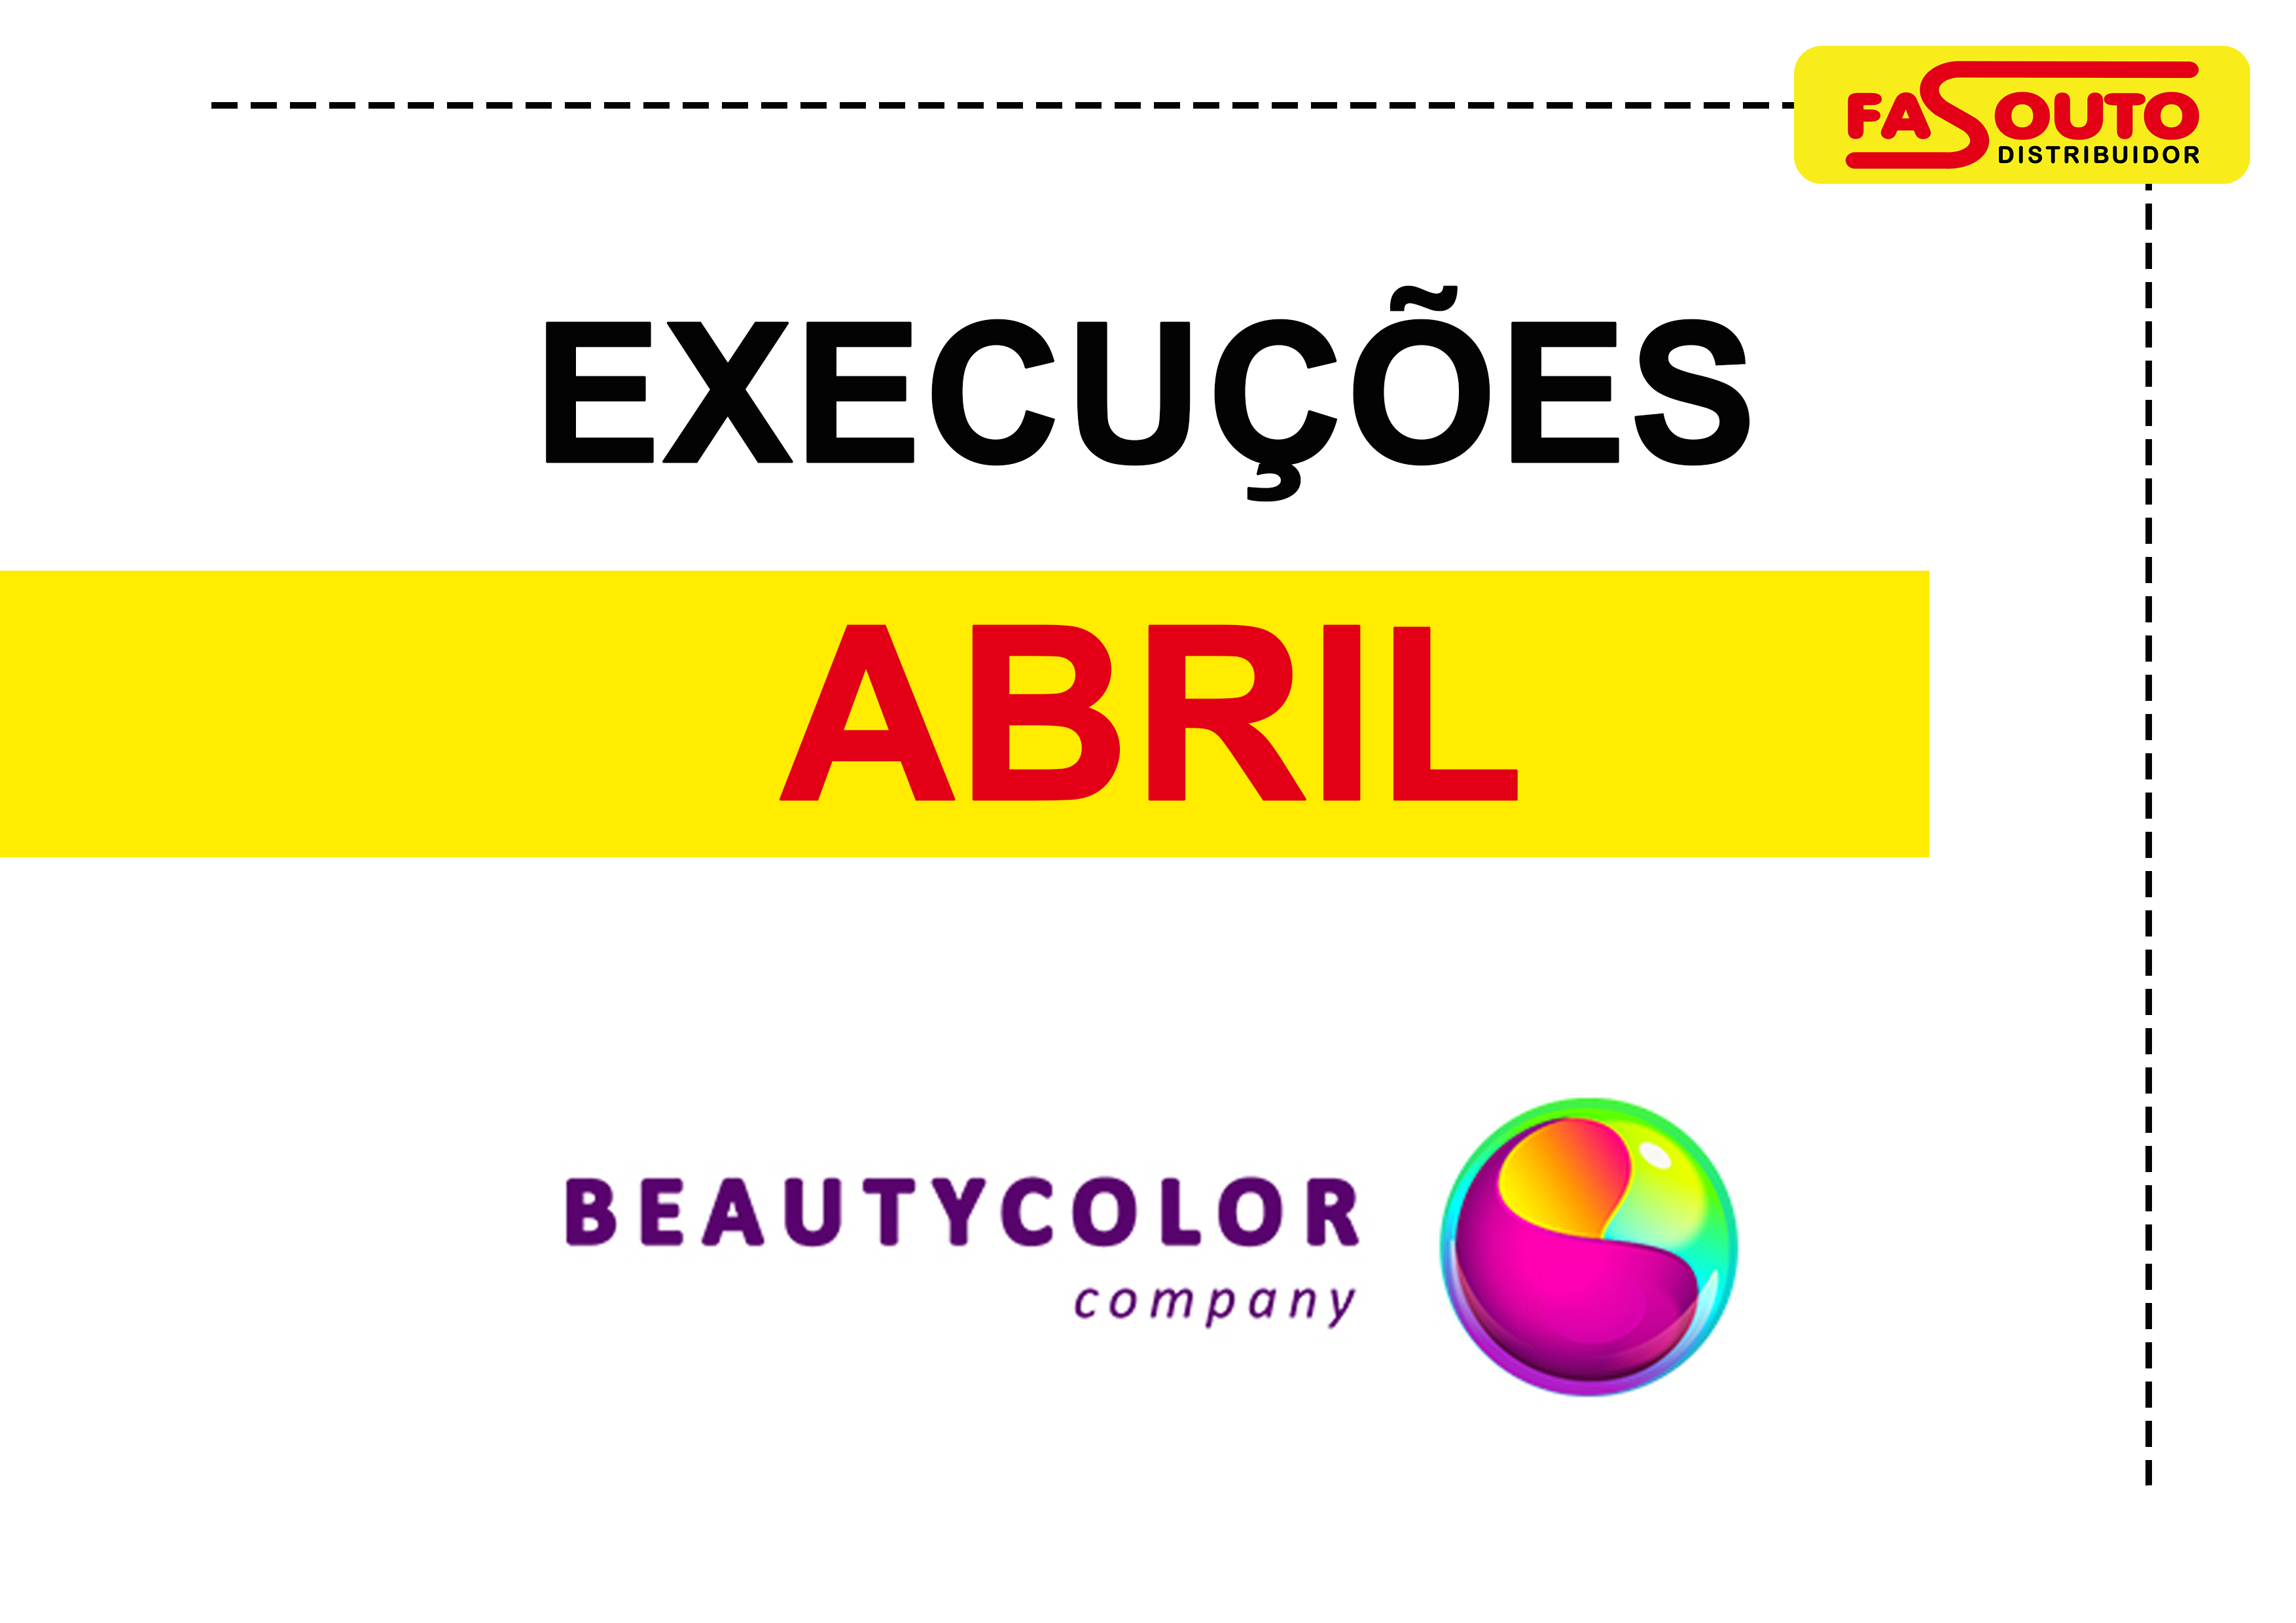 Beautycolor - Abril 2019